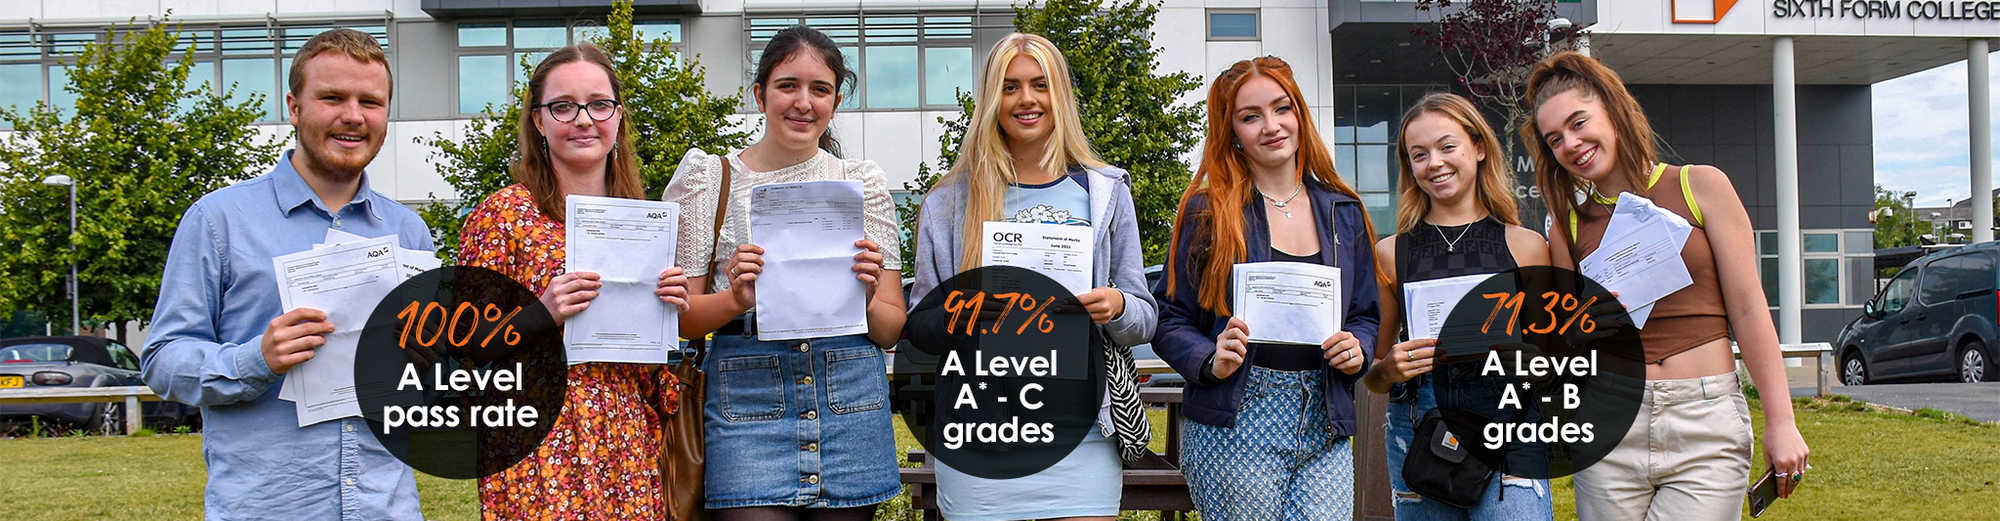 Diverse group of students outsing the college holding their exam pass certificates